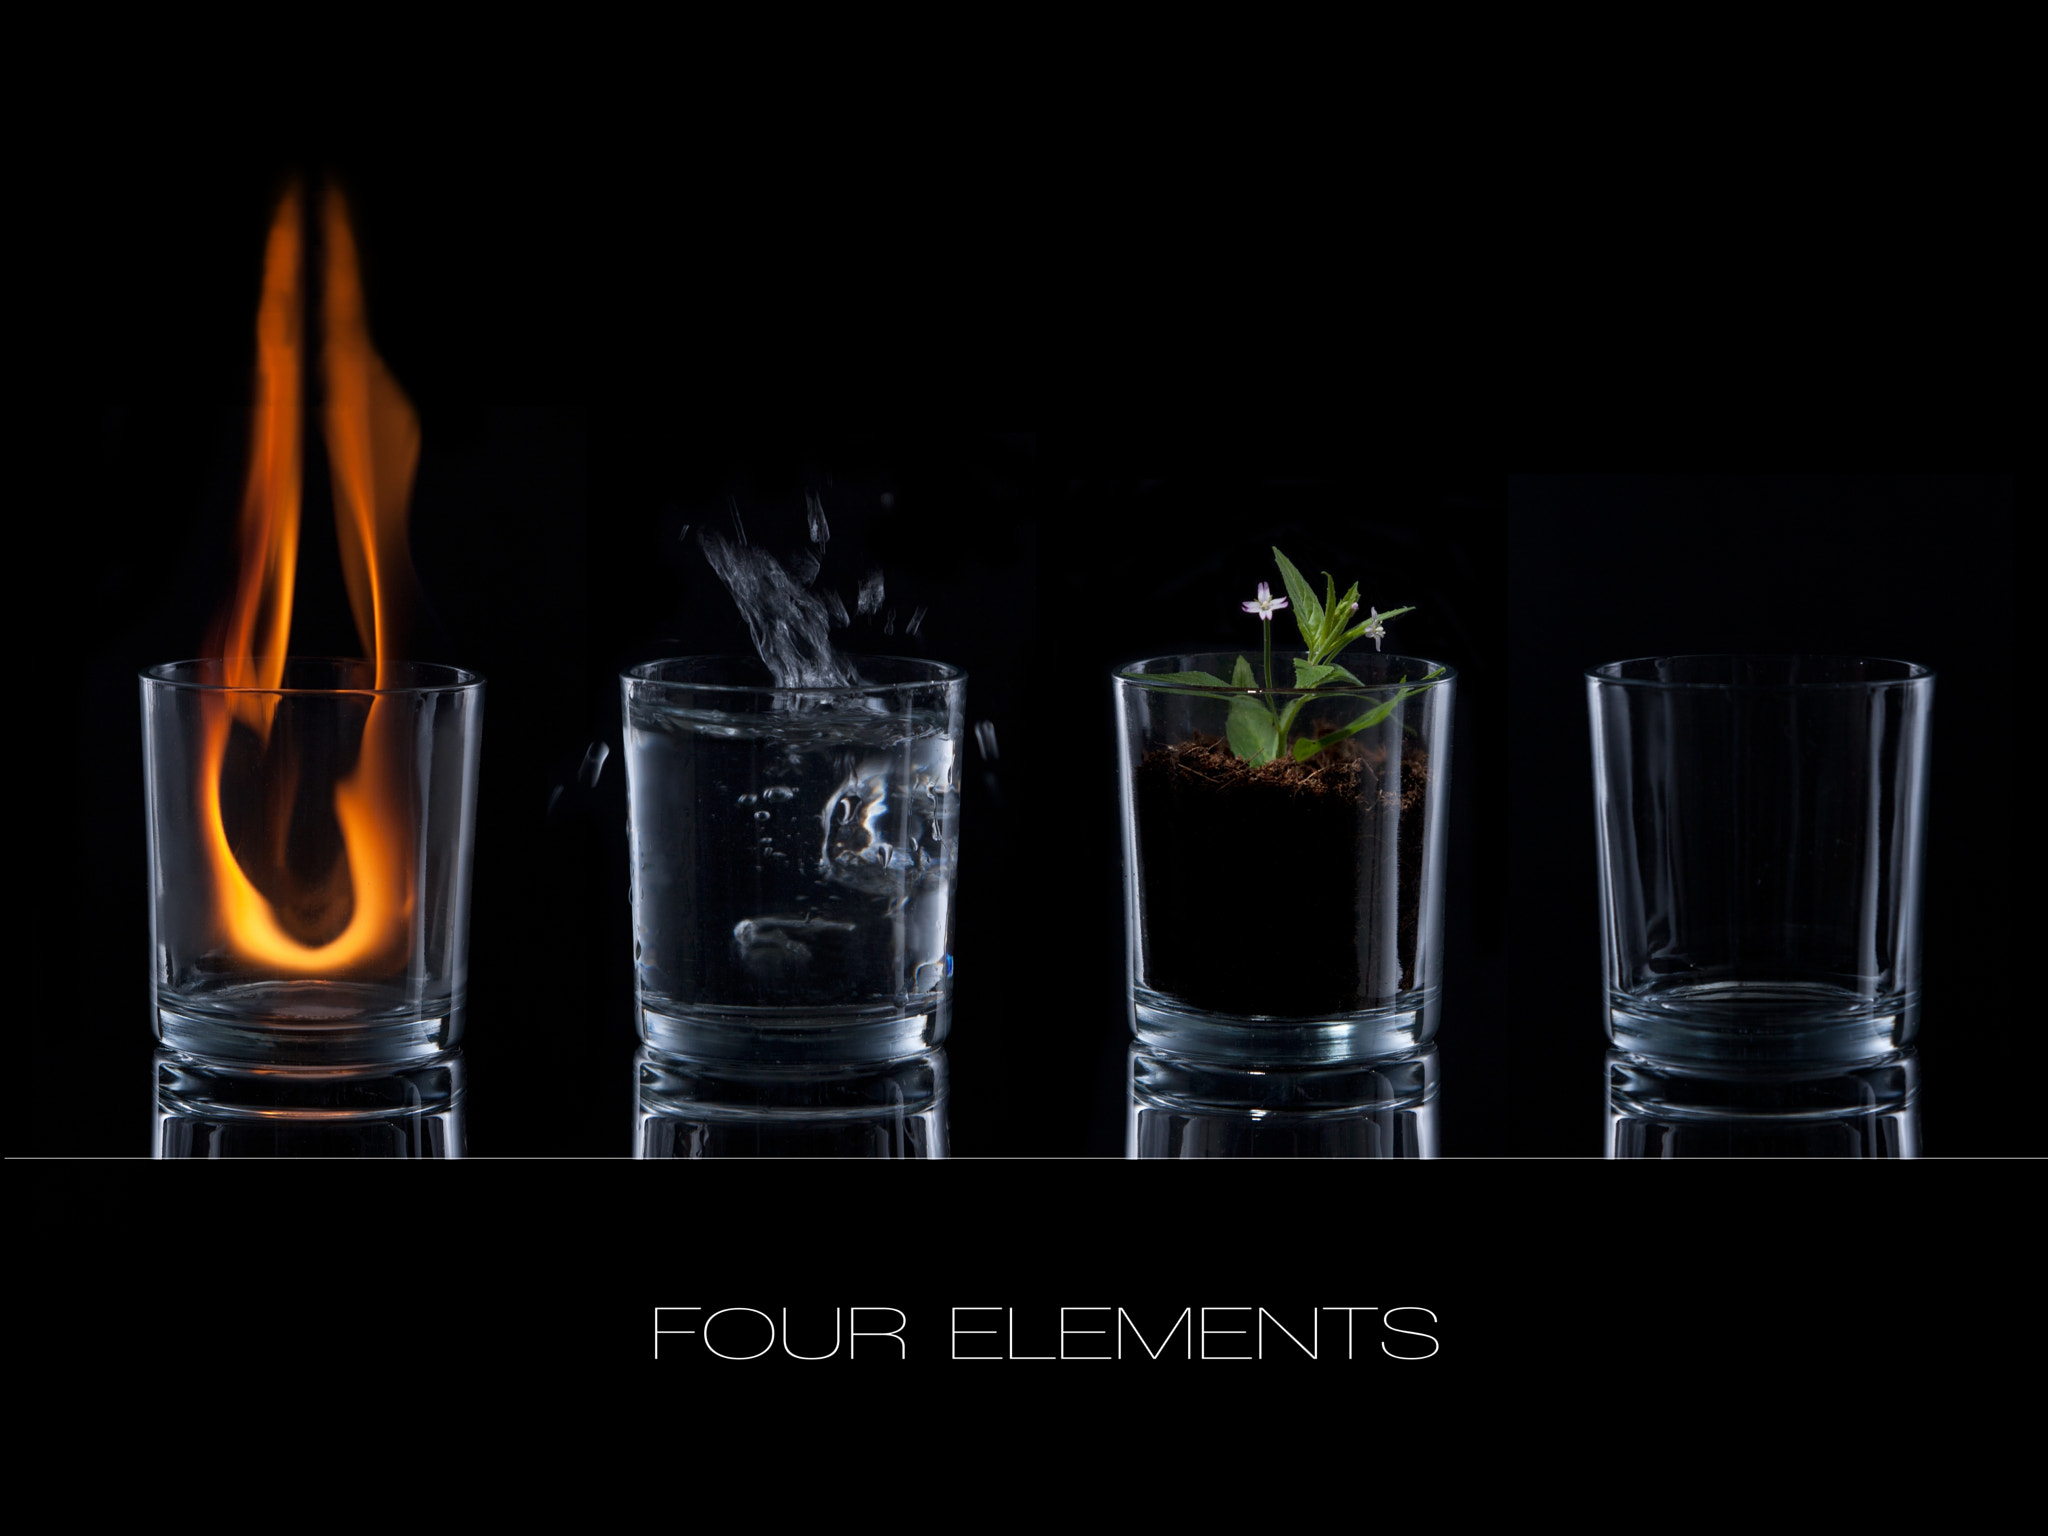 Photograph Four Elements by Christina Grittner on 500px